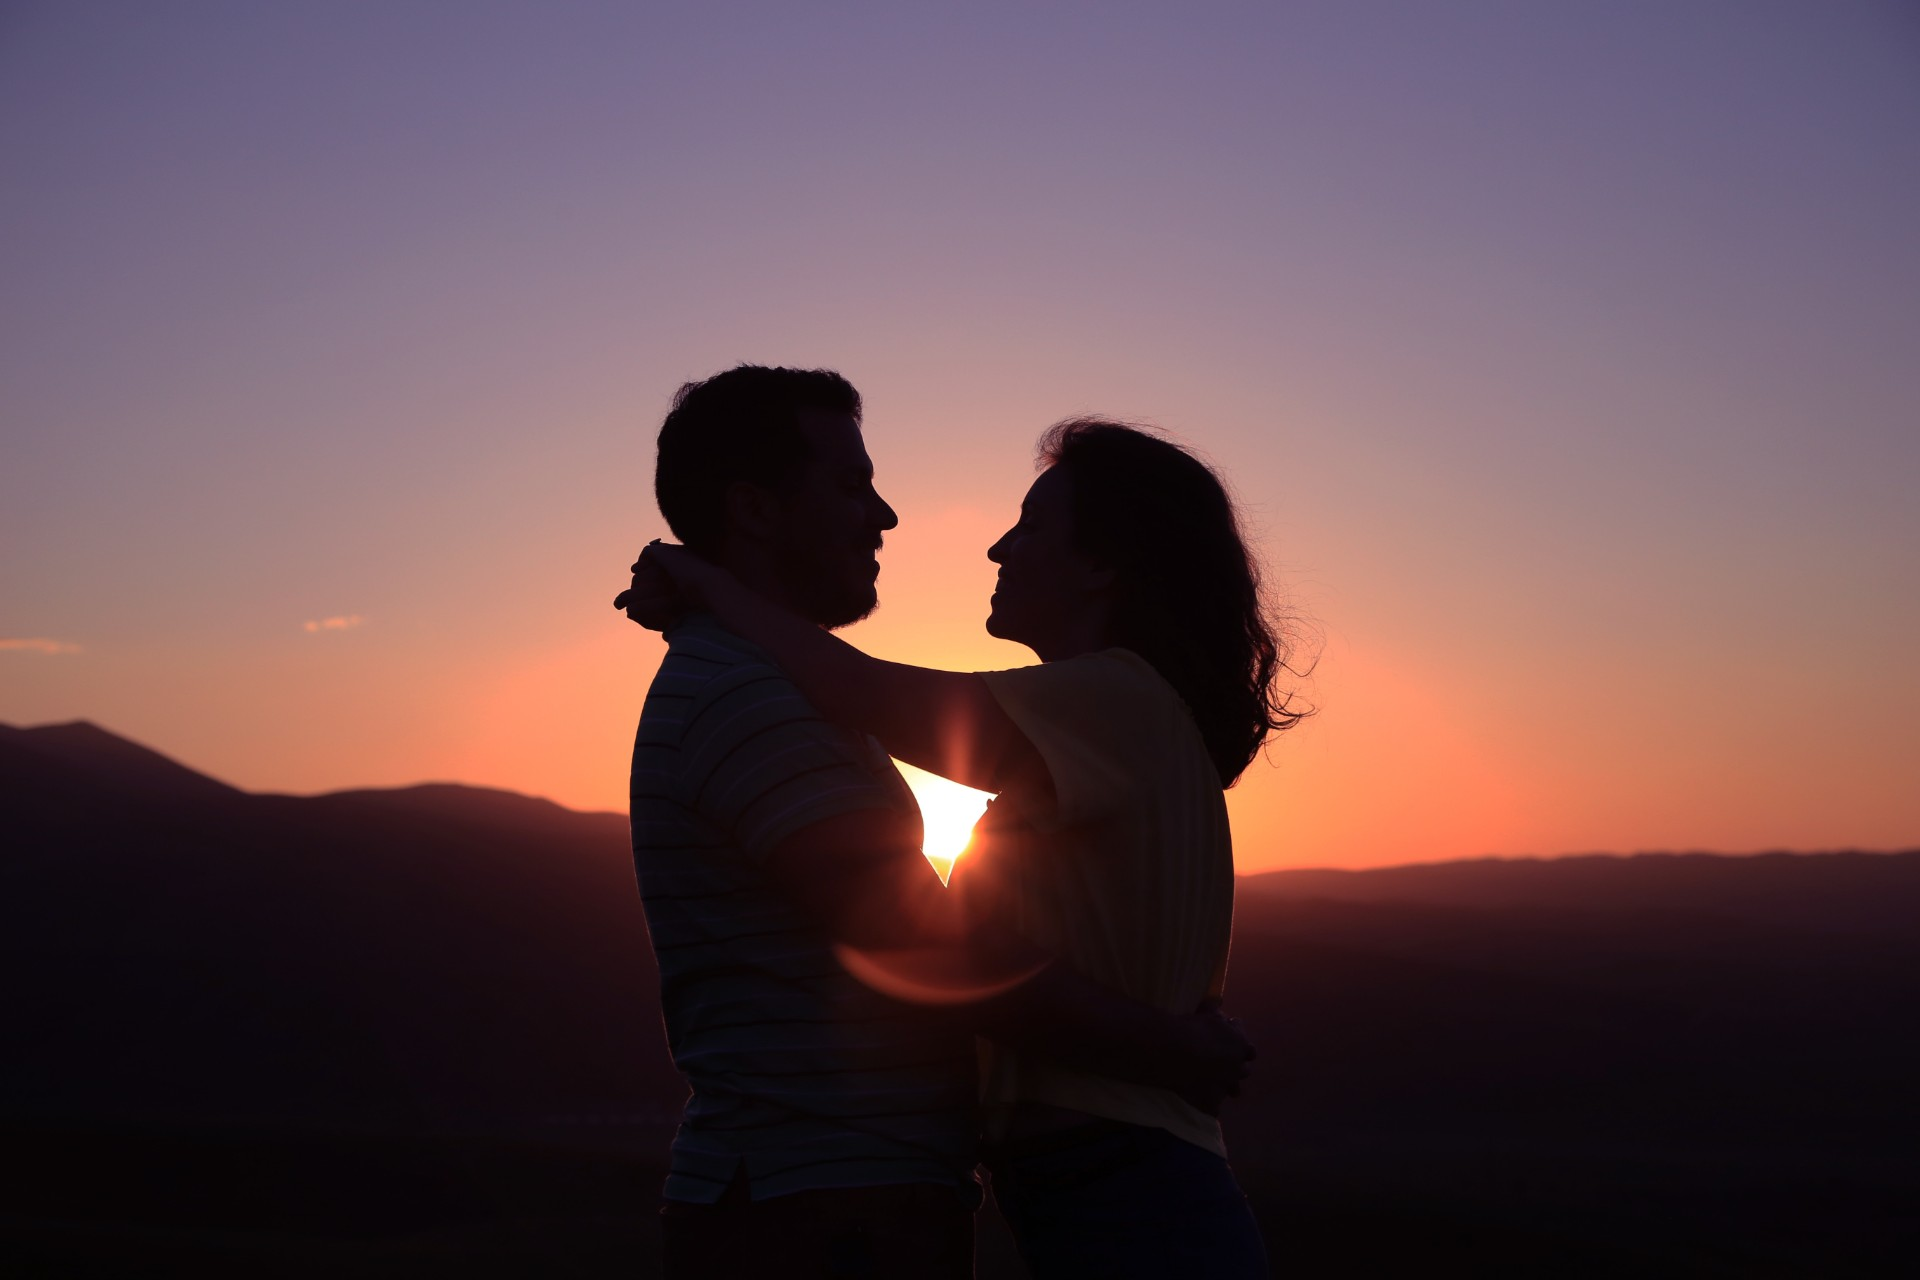 Couple hugging silhouette sunset purple and orange skies love man and woman on mountain in field Long distance relationship tips. Long distance relationship advice. Click through to read more...